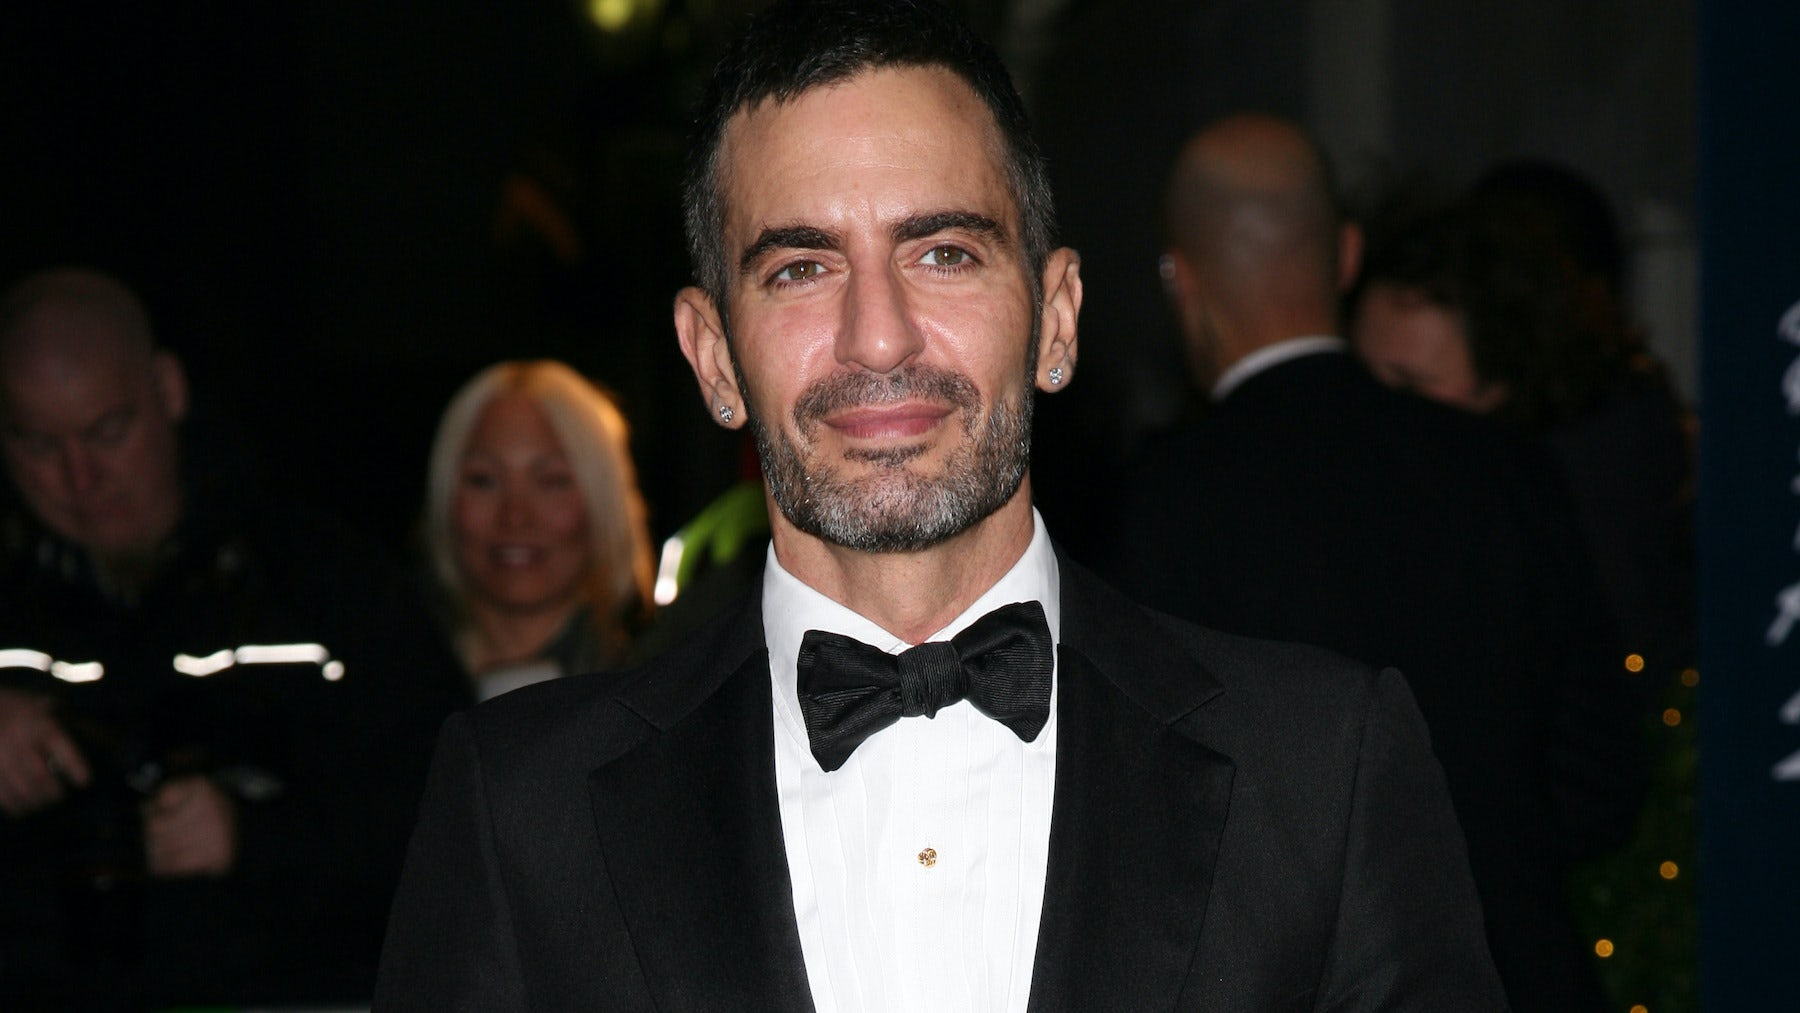 How Marc Jacobs Fell Out of Fashion